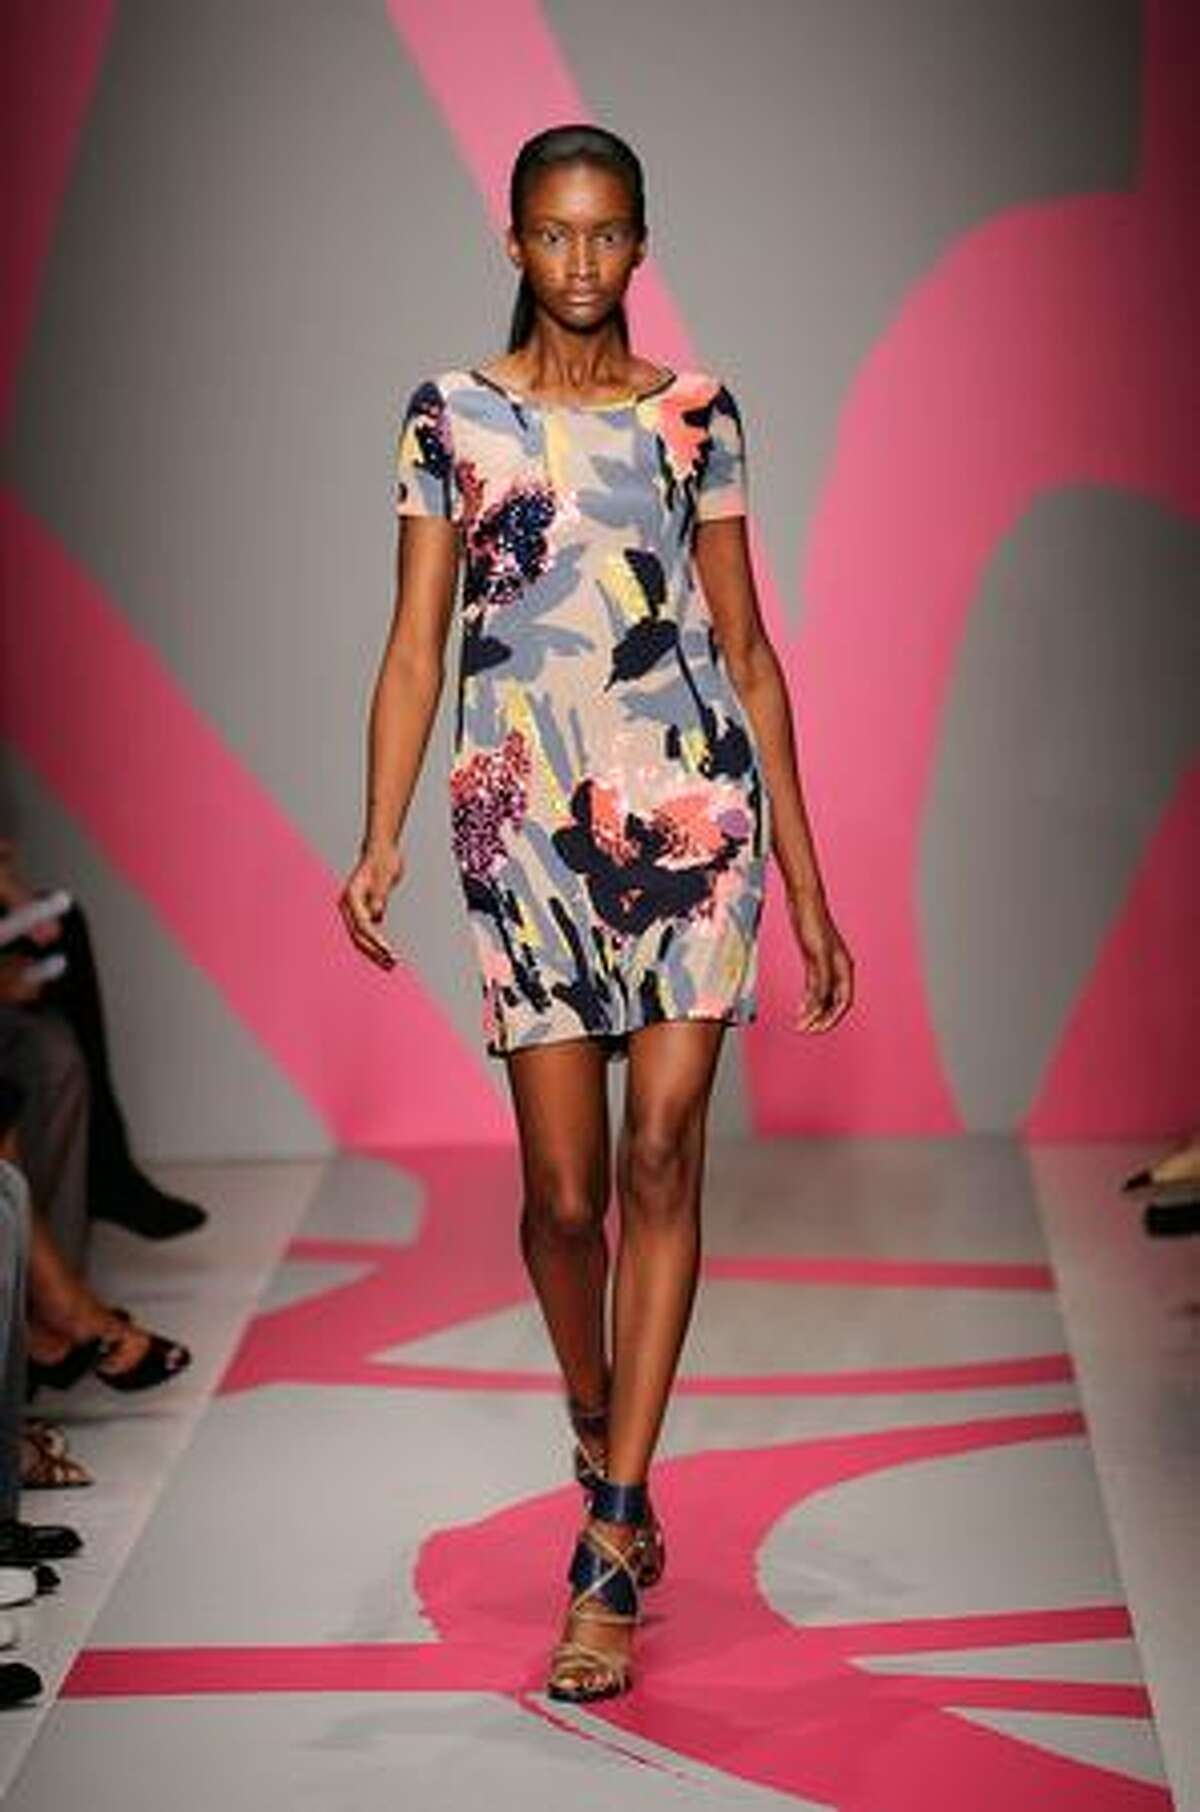 A model walks the runway at the DKNY Spring 2010 Fashion Show on Sunday in New York City.